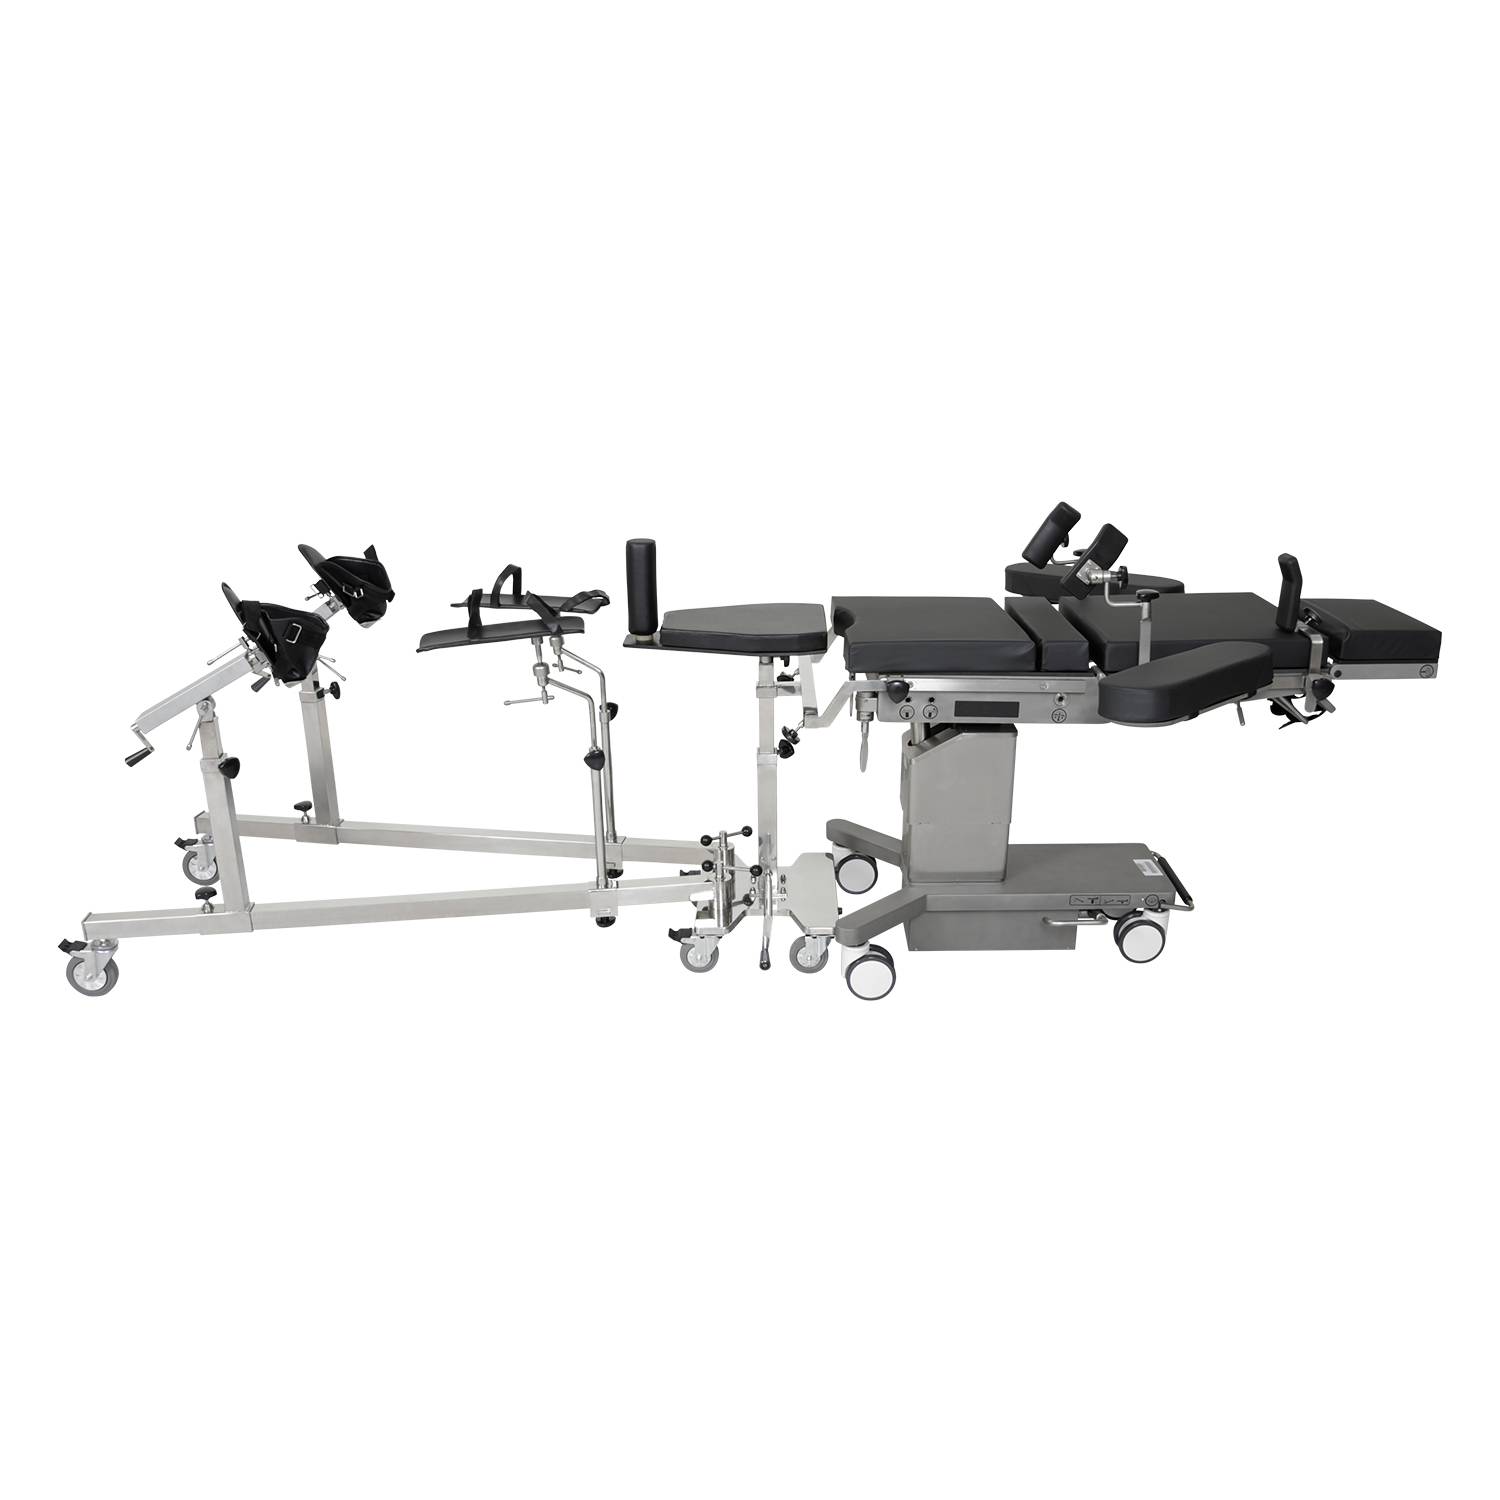 Avante Torino Orthopedic Surgery Table